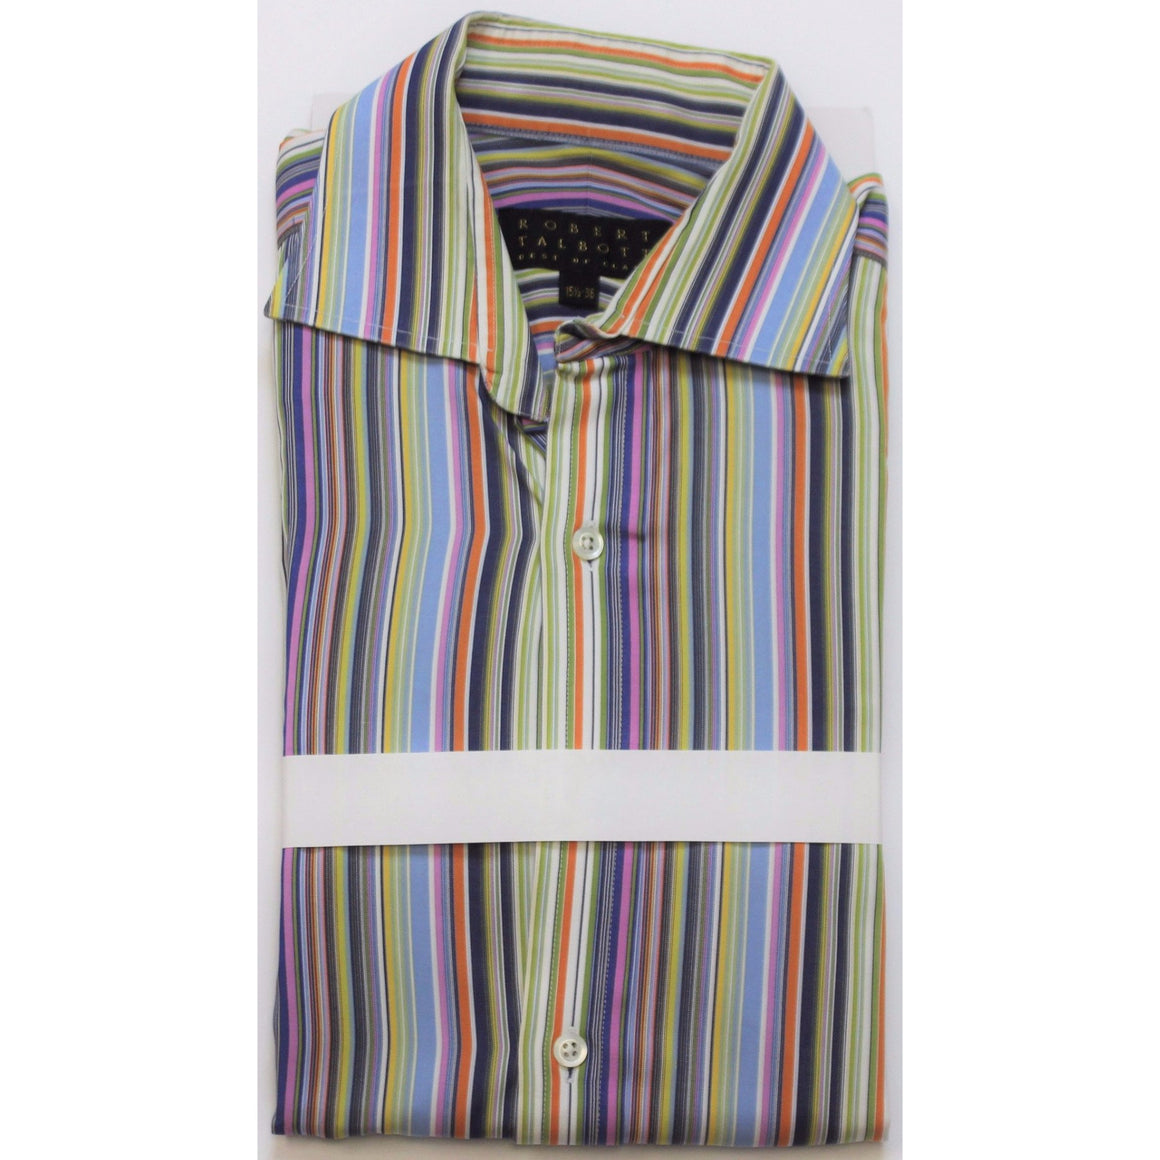 Robert Talbot Multicolor Stripe Shirt Sz: 15 1/2-36